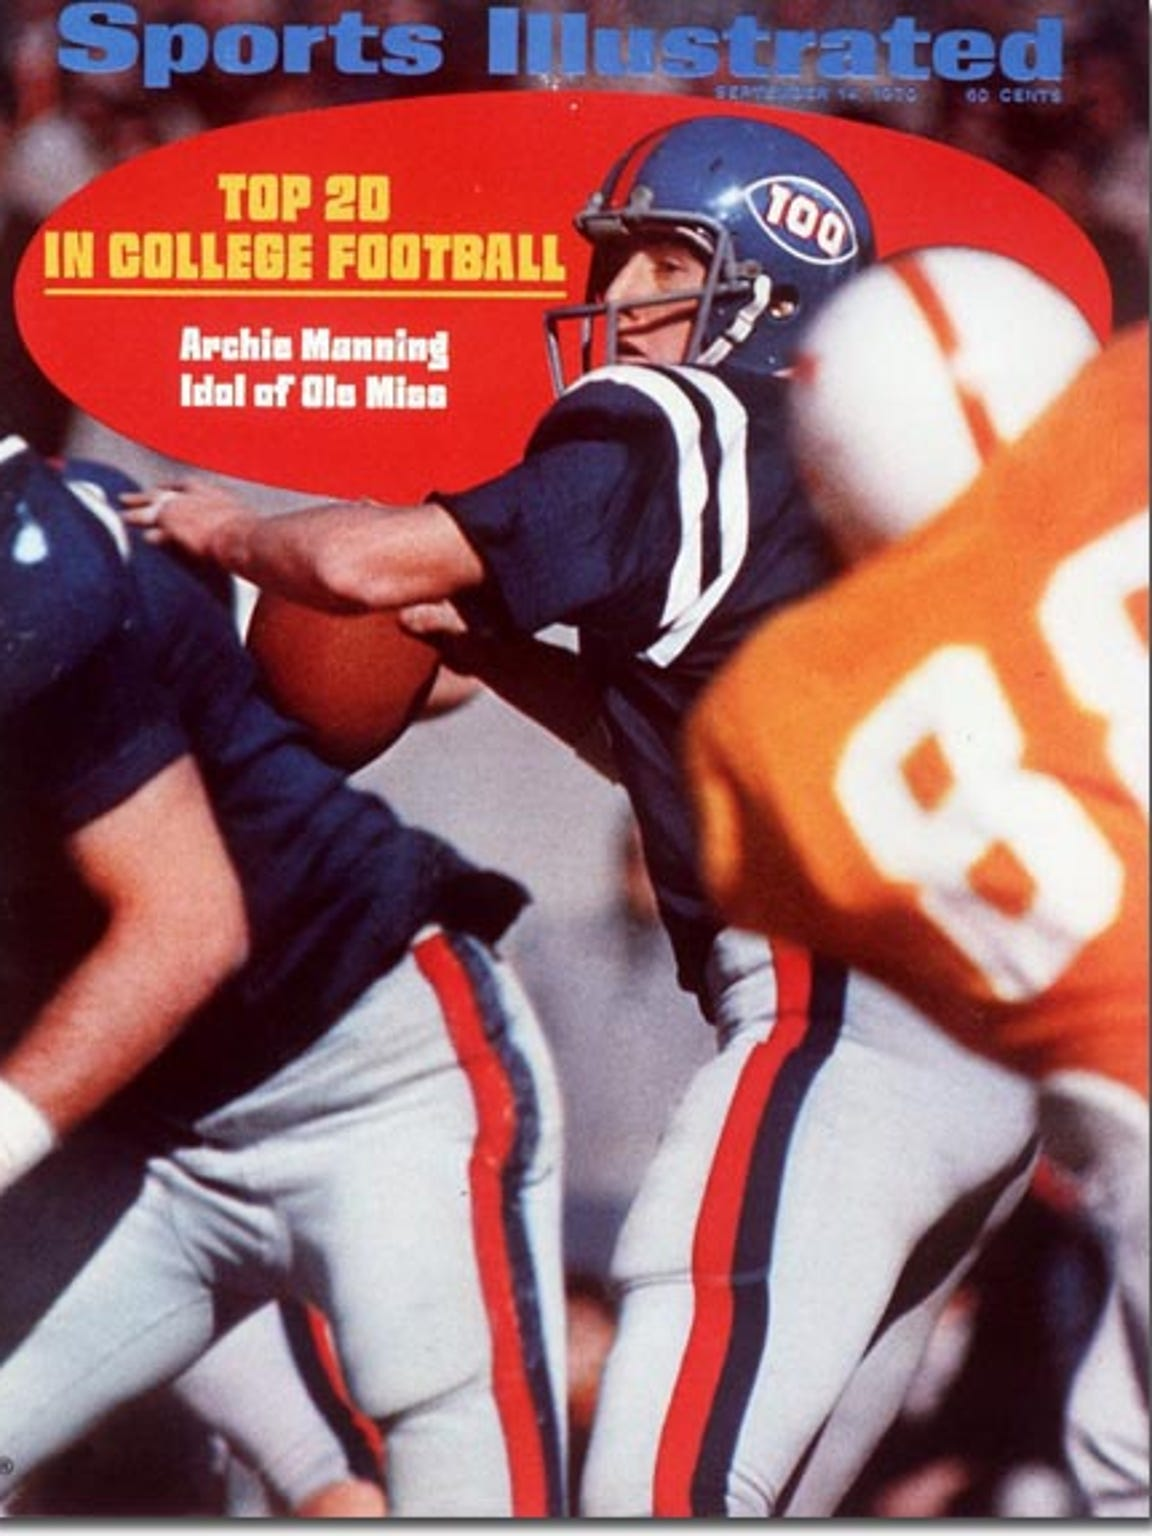 Archie Manning on the cover of a 1970 Sports Illustrated